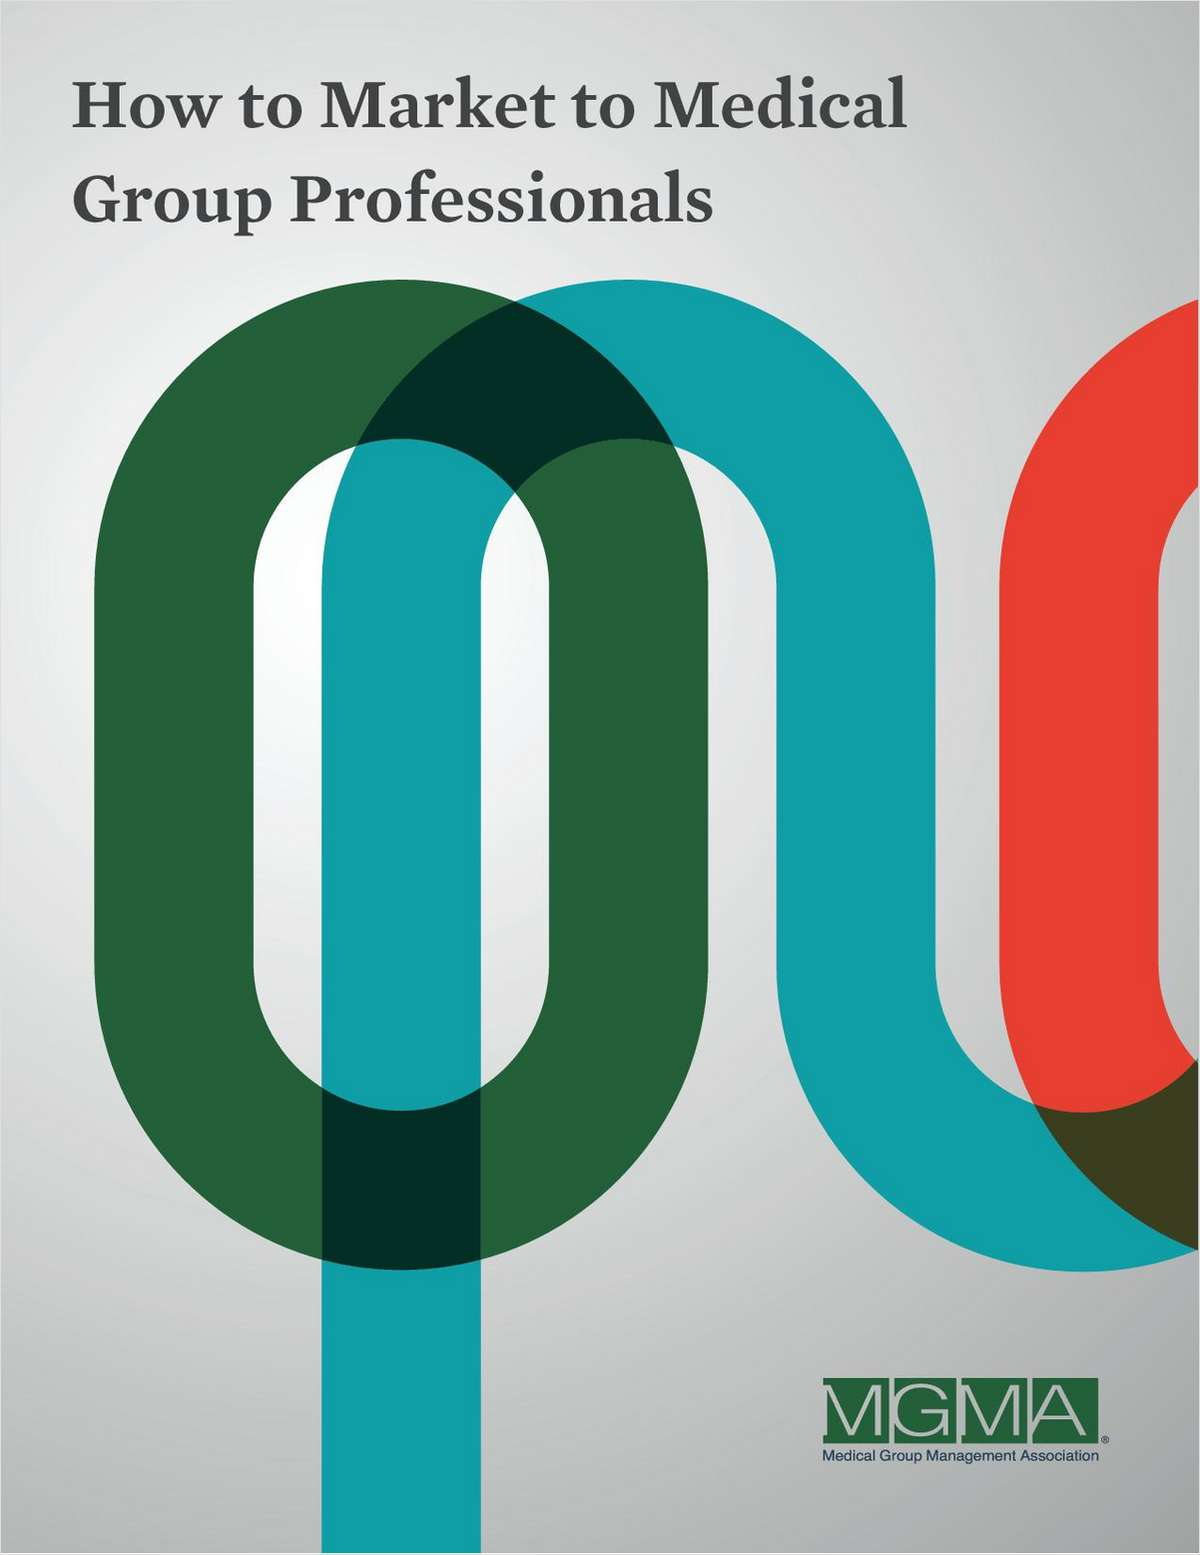 How to Market to Medical Group Professionals